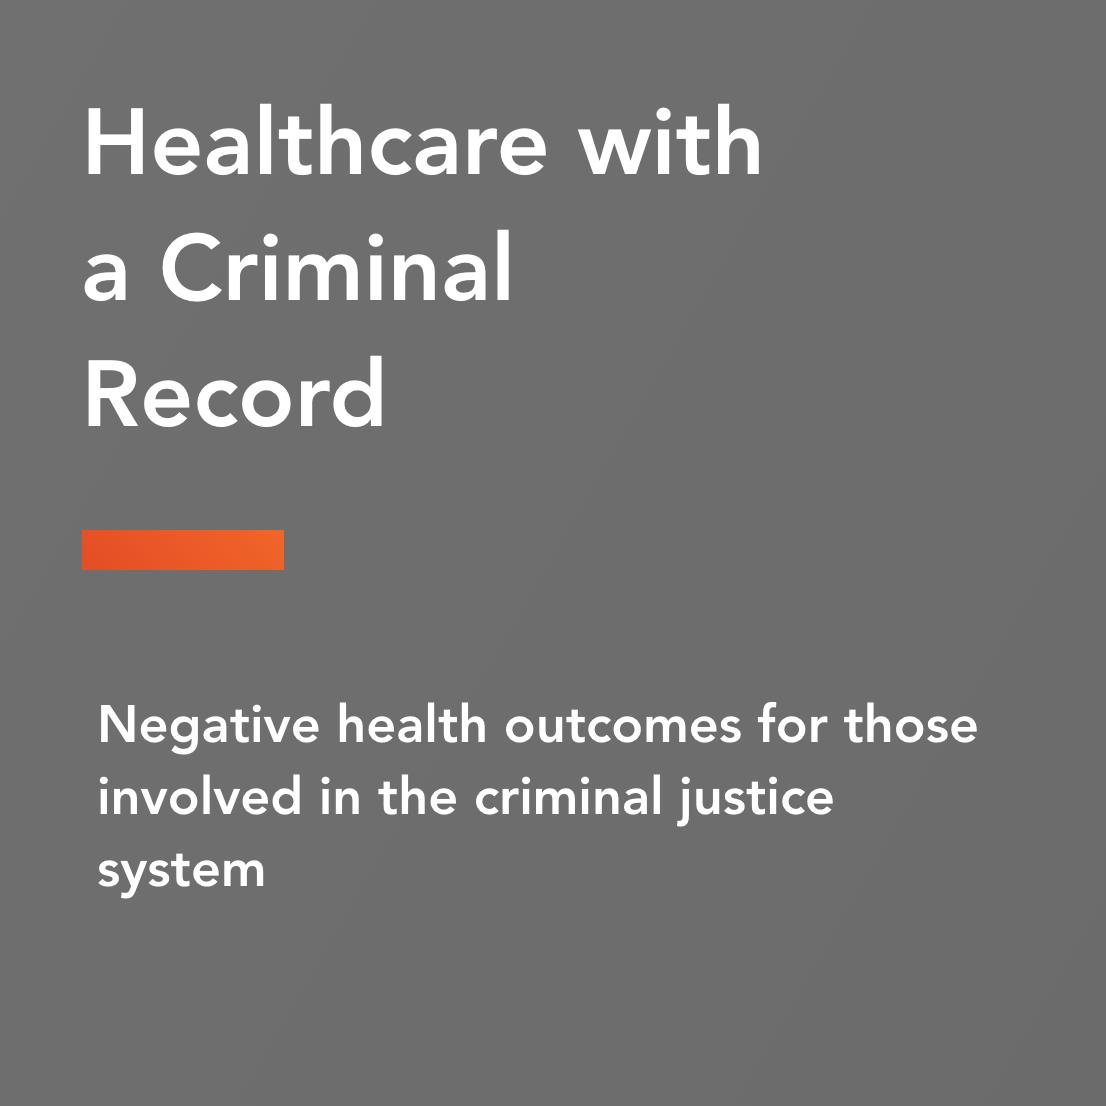 healthcare with a criminal record